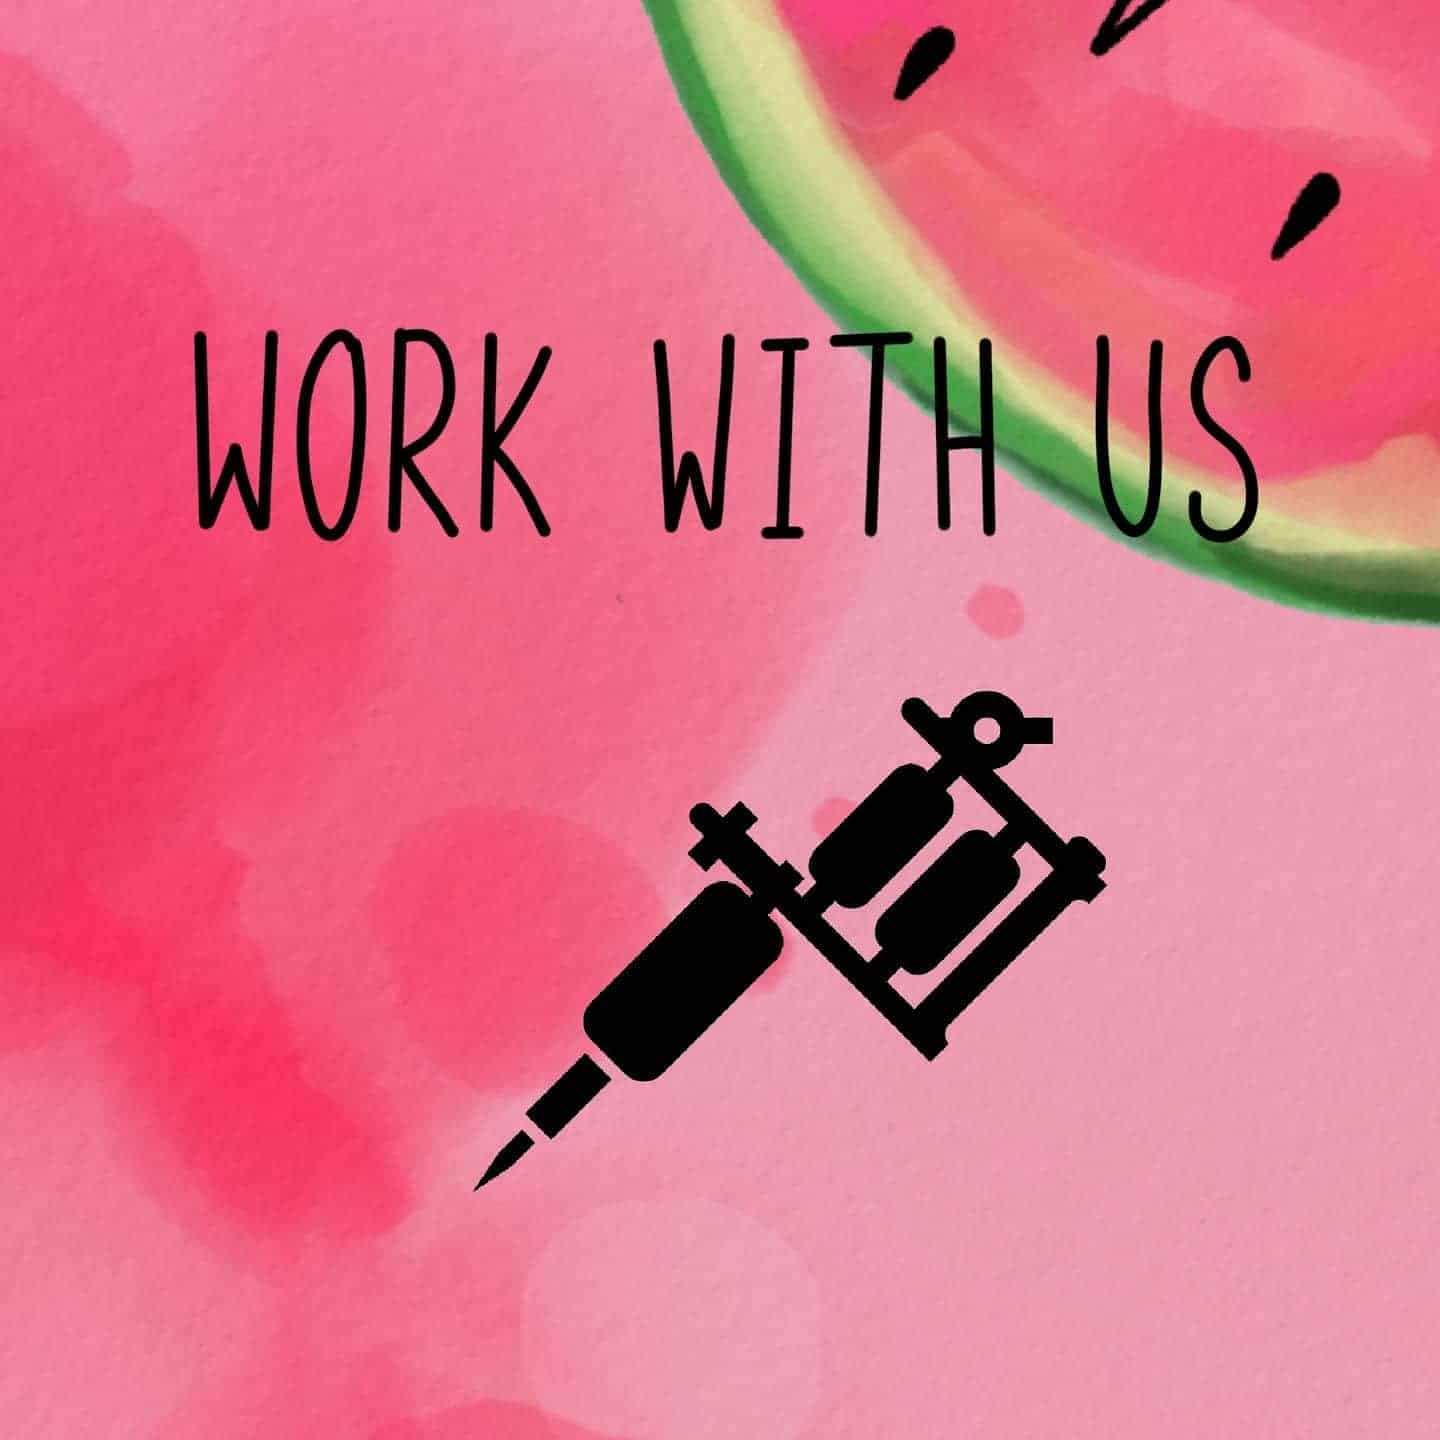 We are looking for a new residential artist to join the crew! Due to an overwhelming demand for linework tattoos you must be competent in linework, however any other any styles considered. To apply please head to our website: watermelon.tattoo and click on the 'Work With Us' section. There will be some info about us, what we provide and what we expect from you. Fill out the form on the page and we will get back to you as soon as we can. Note: this is not an apprenticeship opportunity.